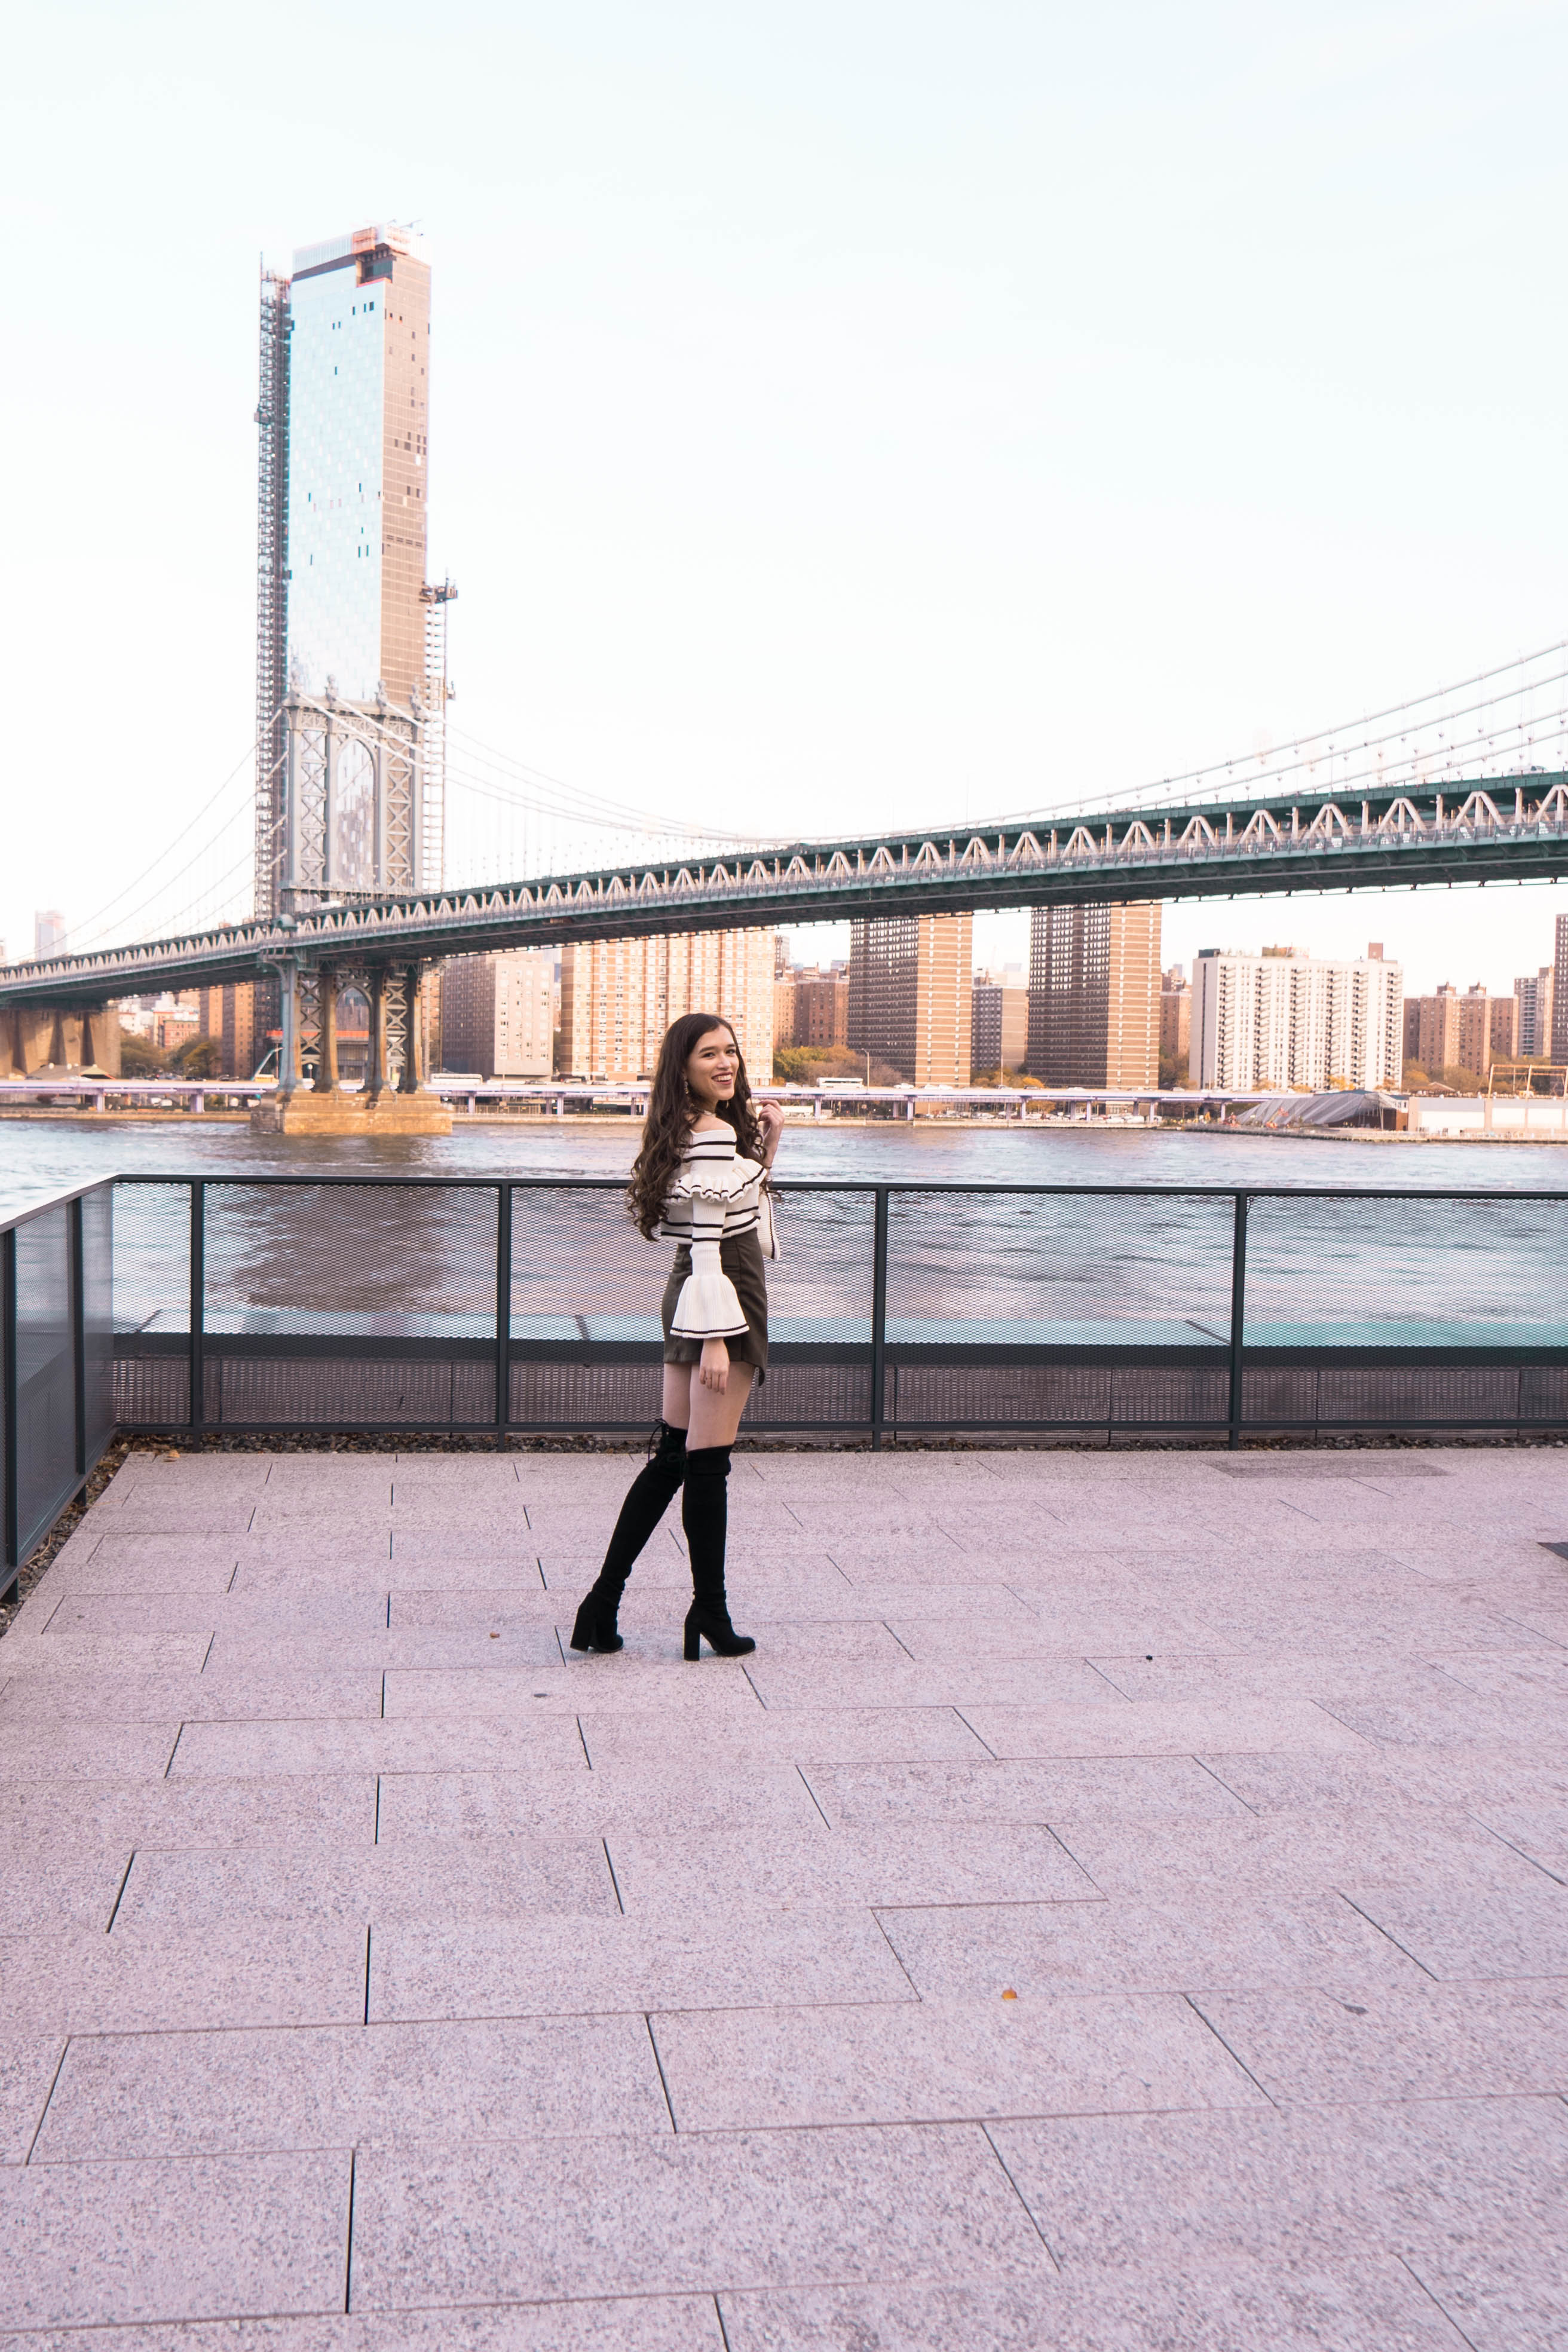 Popular NYC travel and style blogger Eva Phan of Eva Darling in DUMBO Brooklyn Manhattan skyline view roodtop World Trade Center Brooklyn Bridge self portrait bell sleeve sweater army green mini skirt black stuart weitzman hiline over the knee boots otk suede where to go in New York hidden public access rooftop free photography location trendy luxury teen ootd inspiration view of Manhattan Bridge